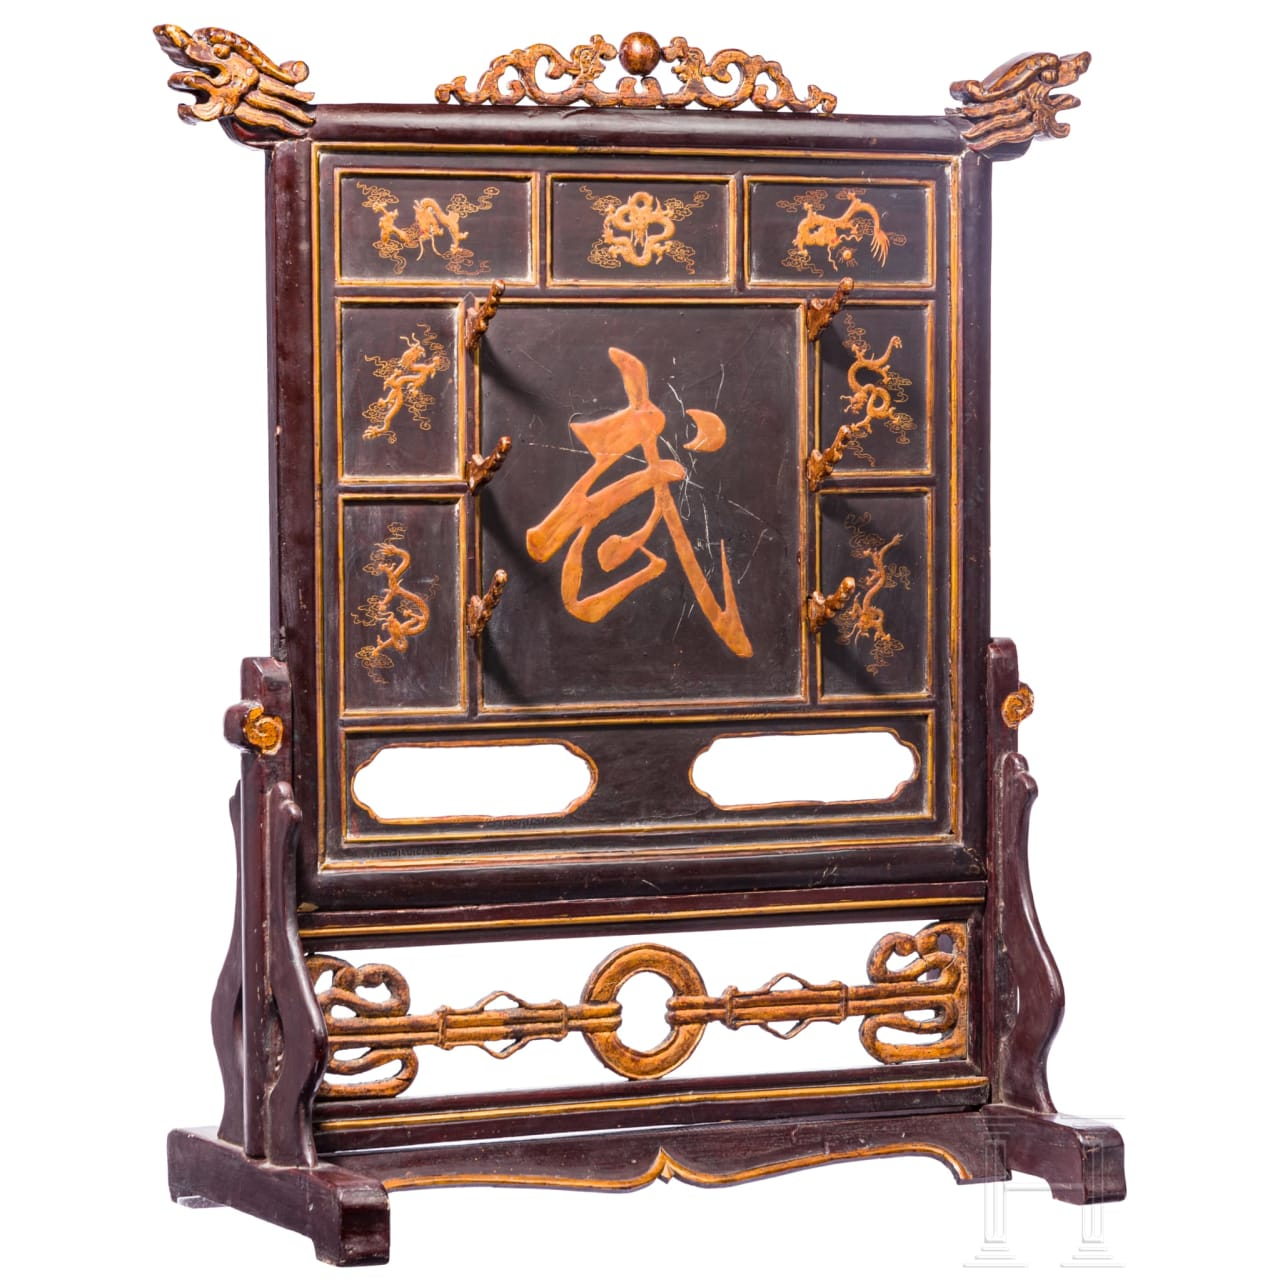 A Chinese sword stand, 19th century